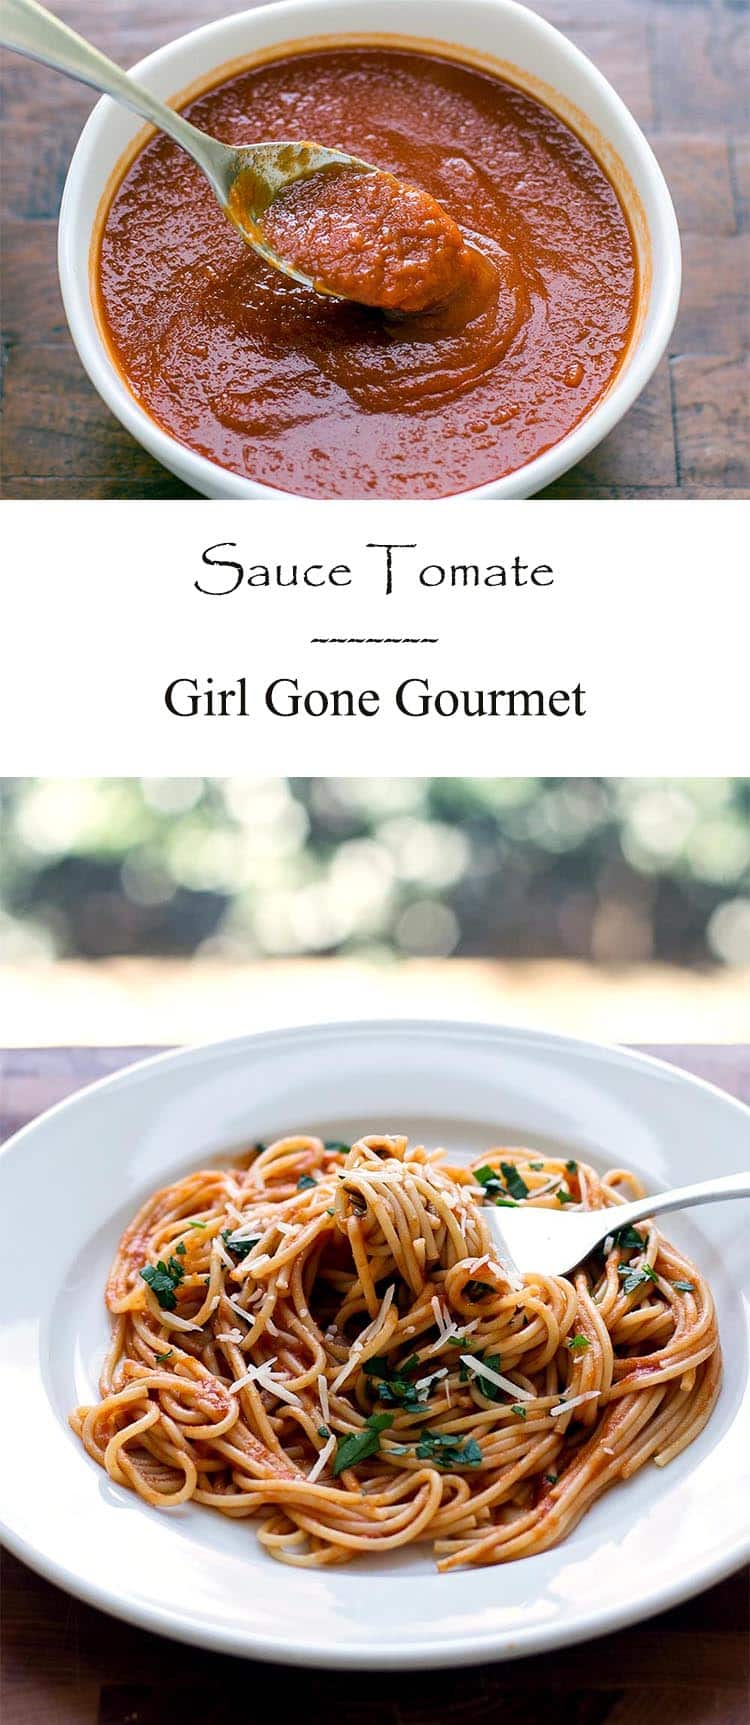 This sauce tomate is slow-cooked for maximum flavor! | girlgonegourmet.com